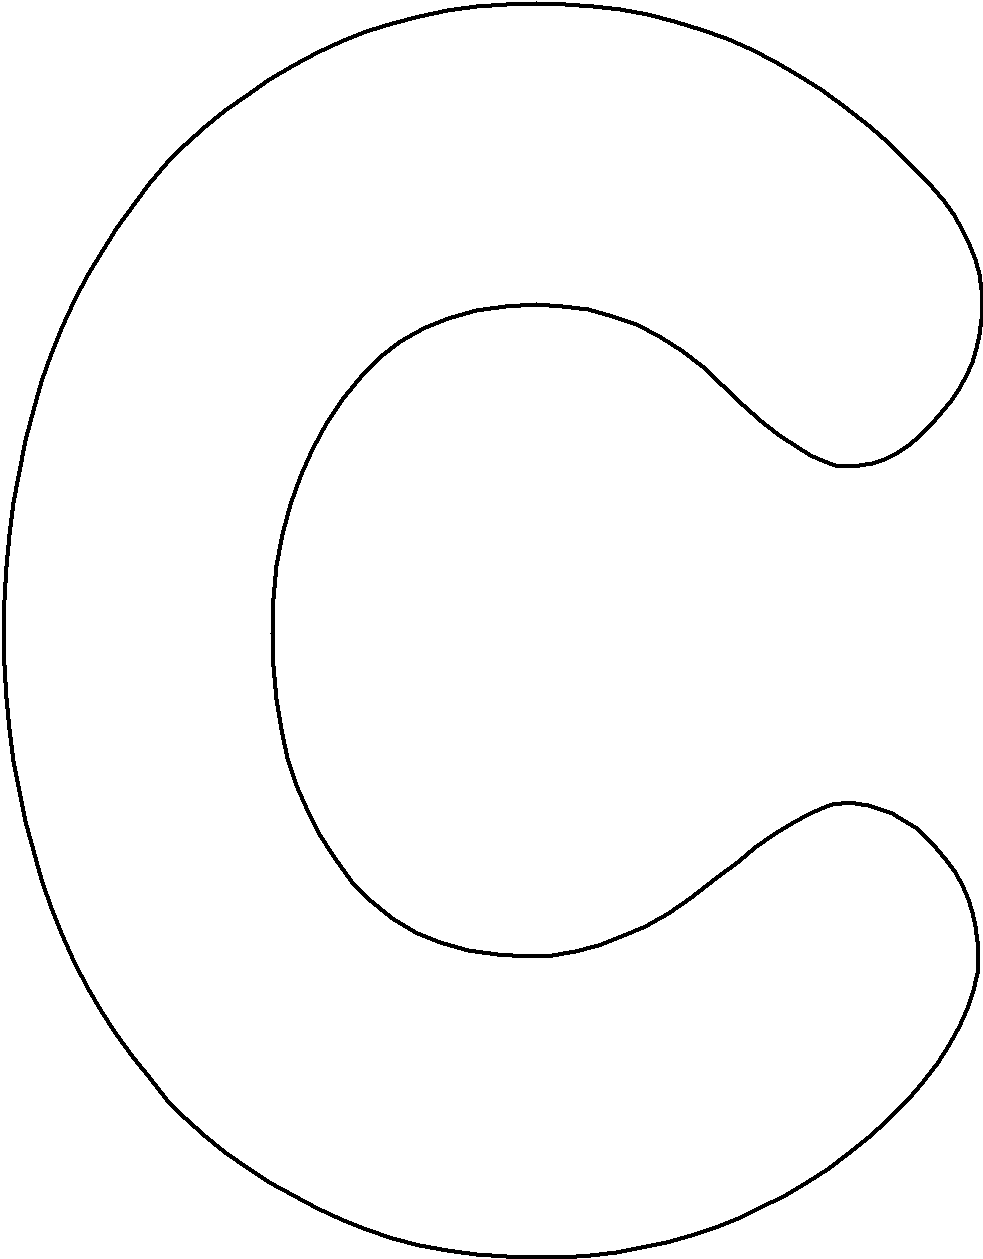 lower case c | Abc coloring pages, Writing worksheets ...